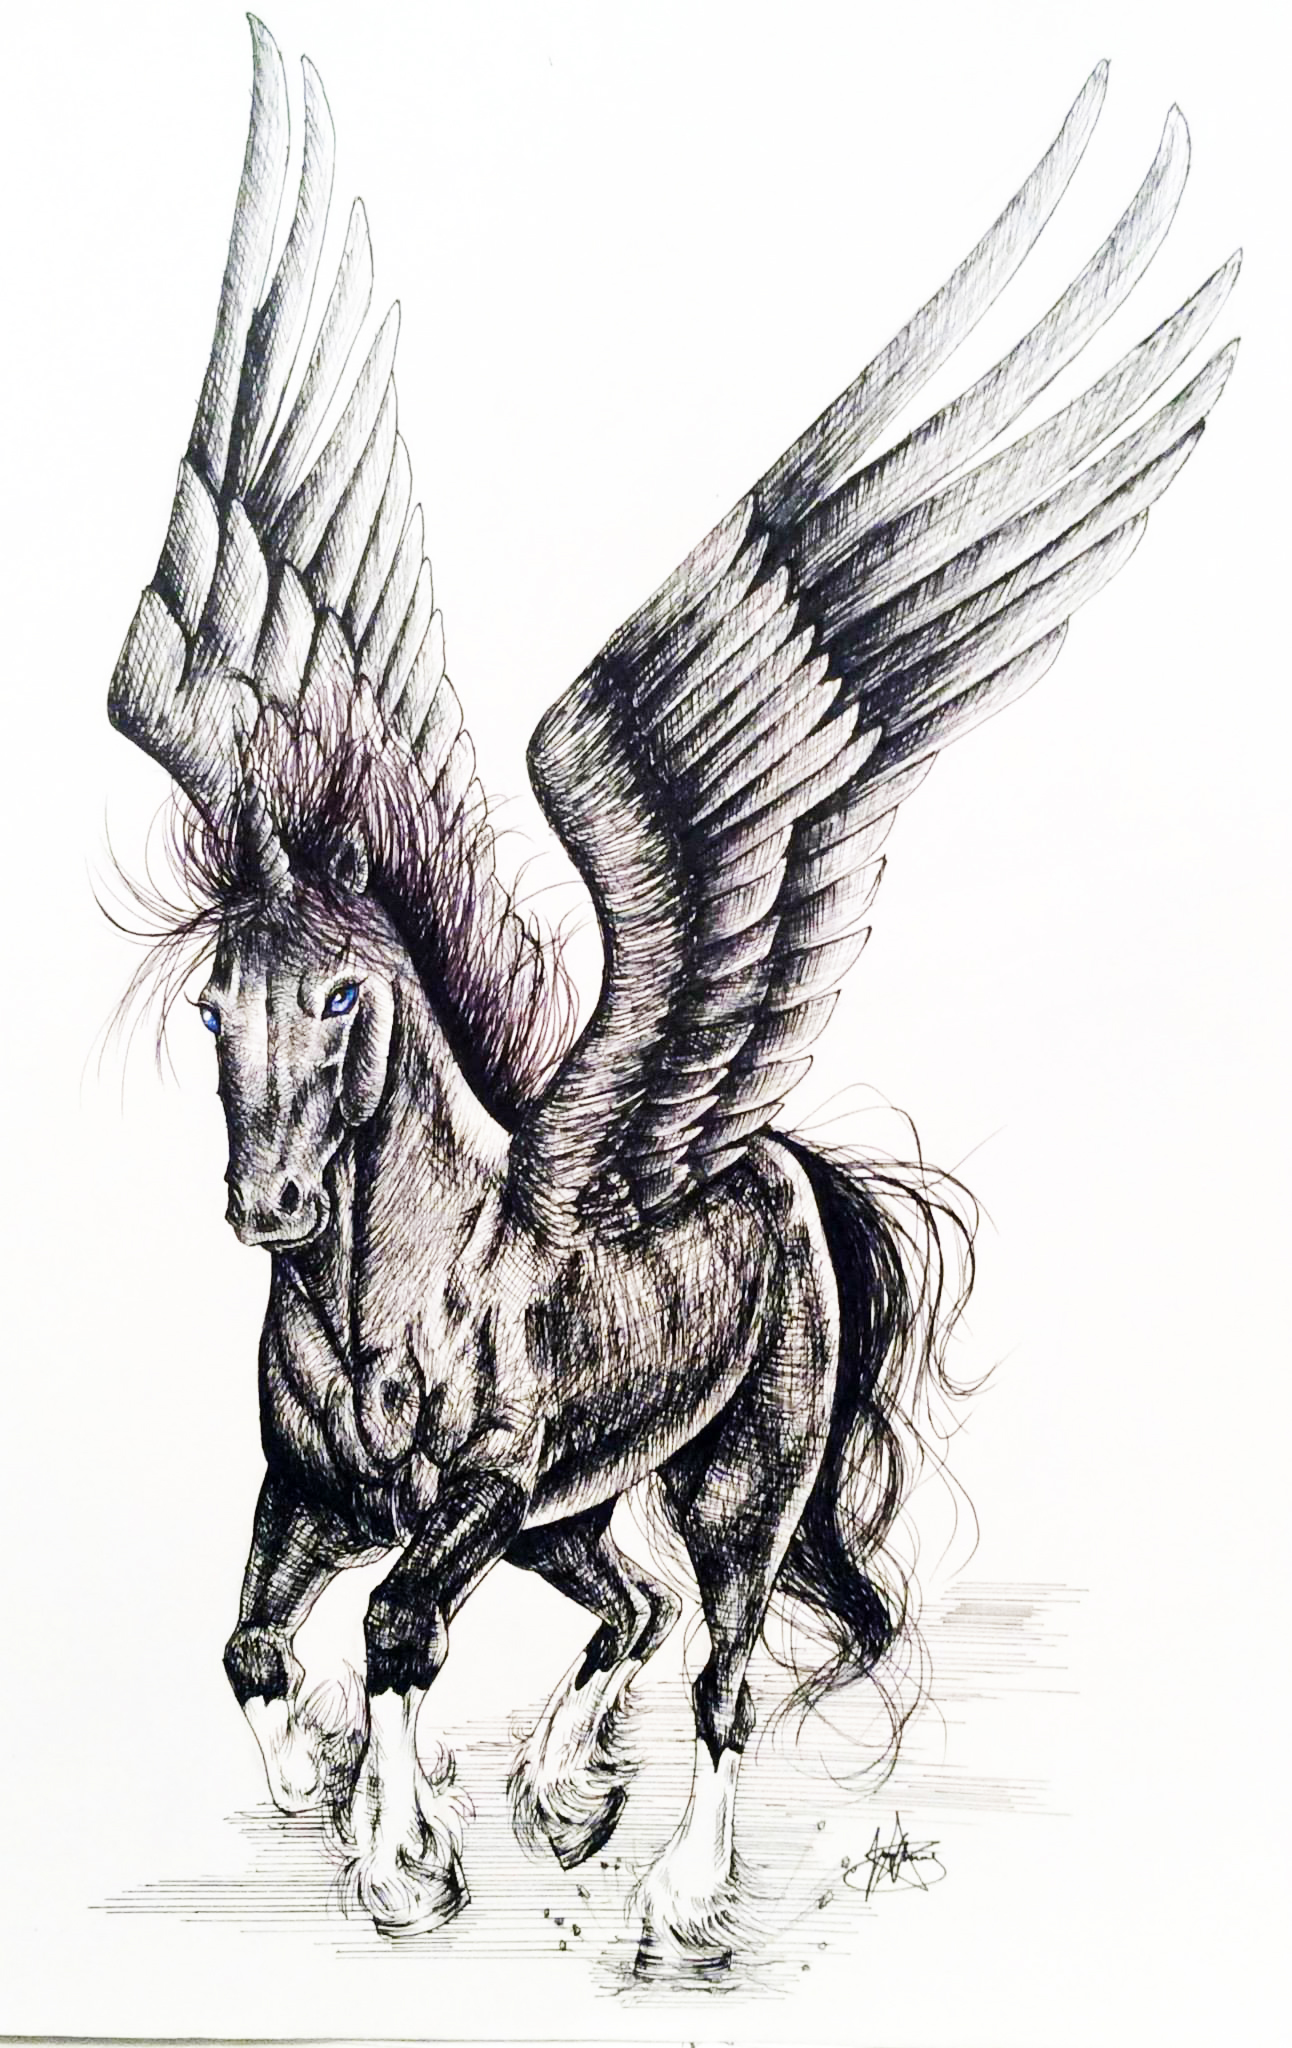 Ink portrait of a unicorn with wings